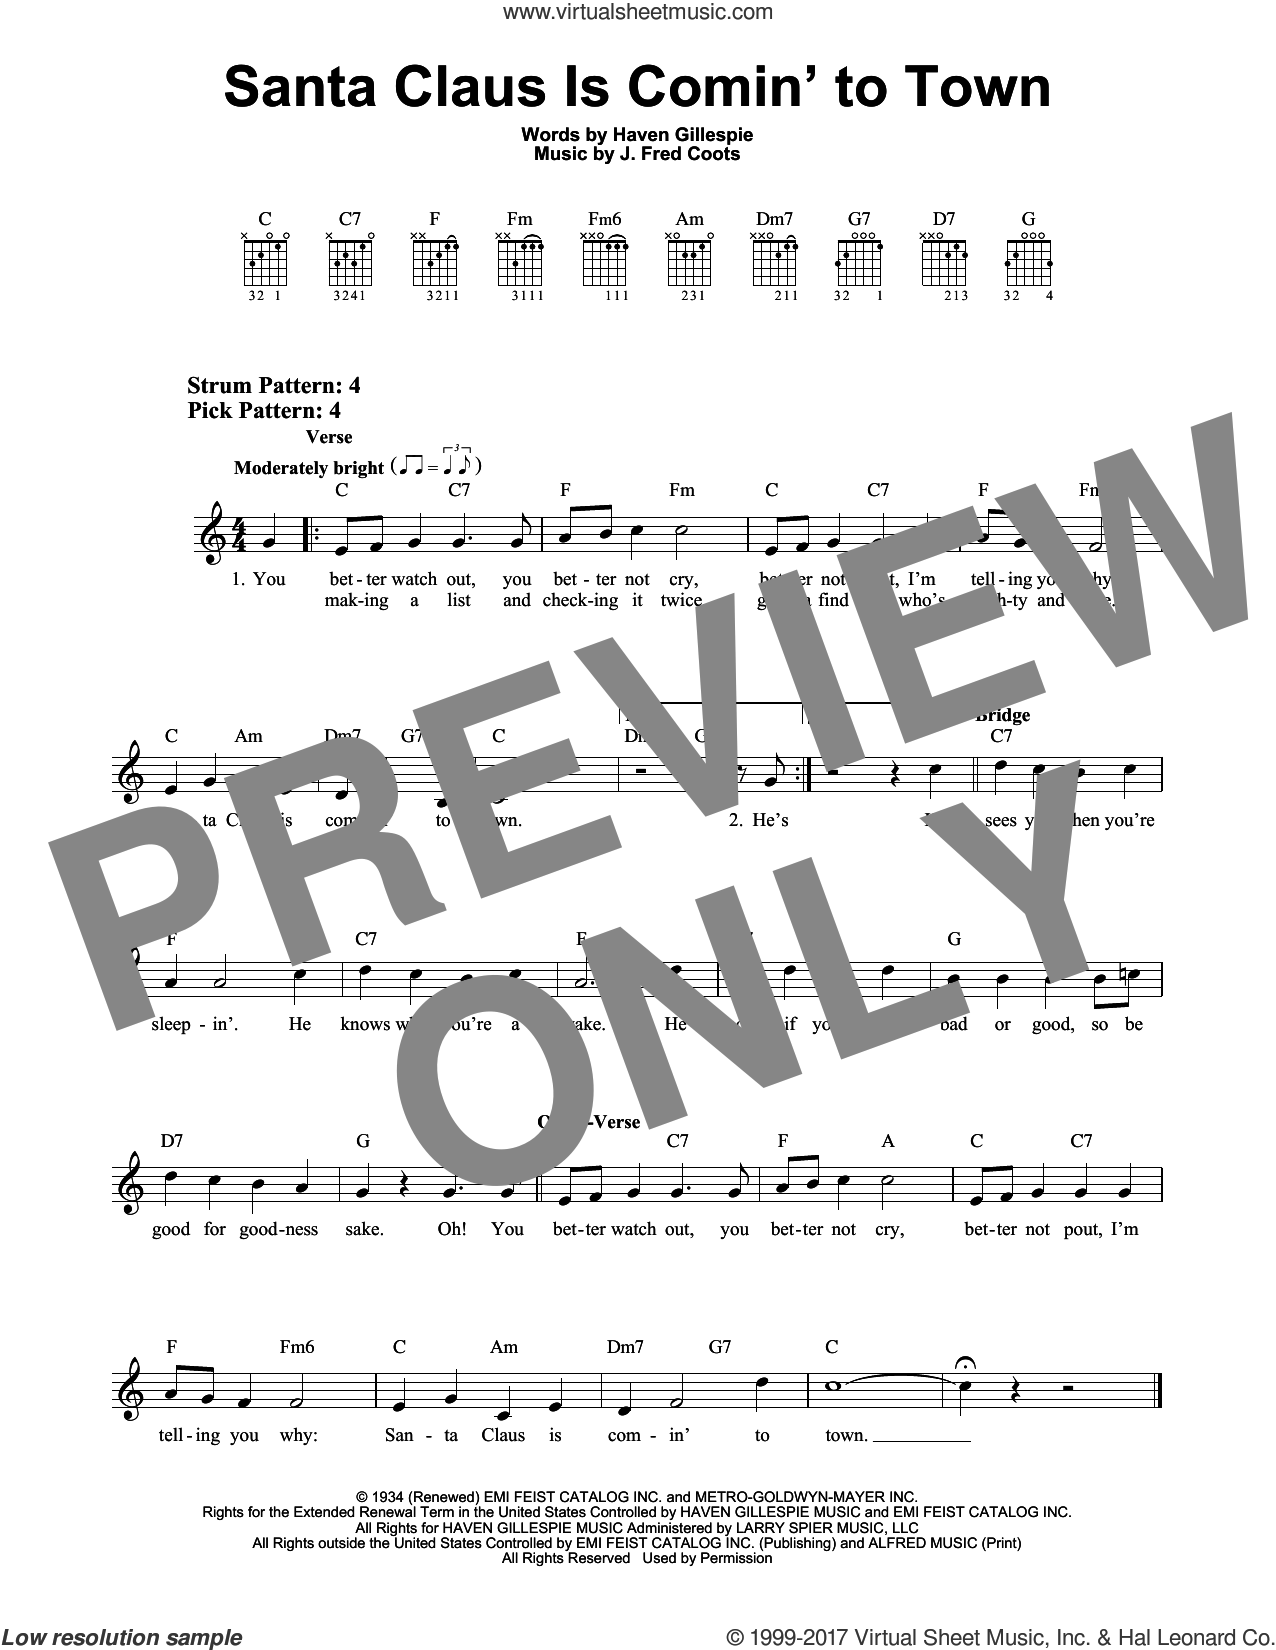 Santa Claus Is Comin' To Town sheet music for guitar solo (chords) by J. Fred Coots and Haven Gillespie, easy guitar (chords)